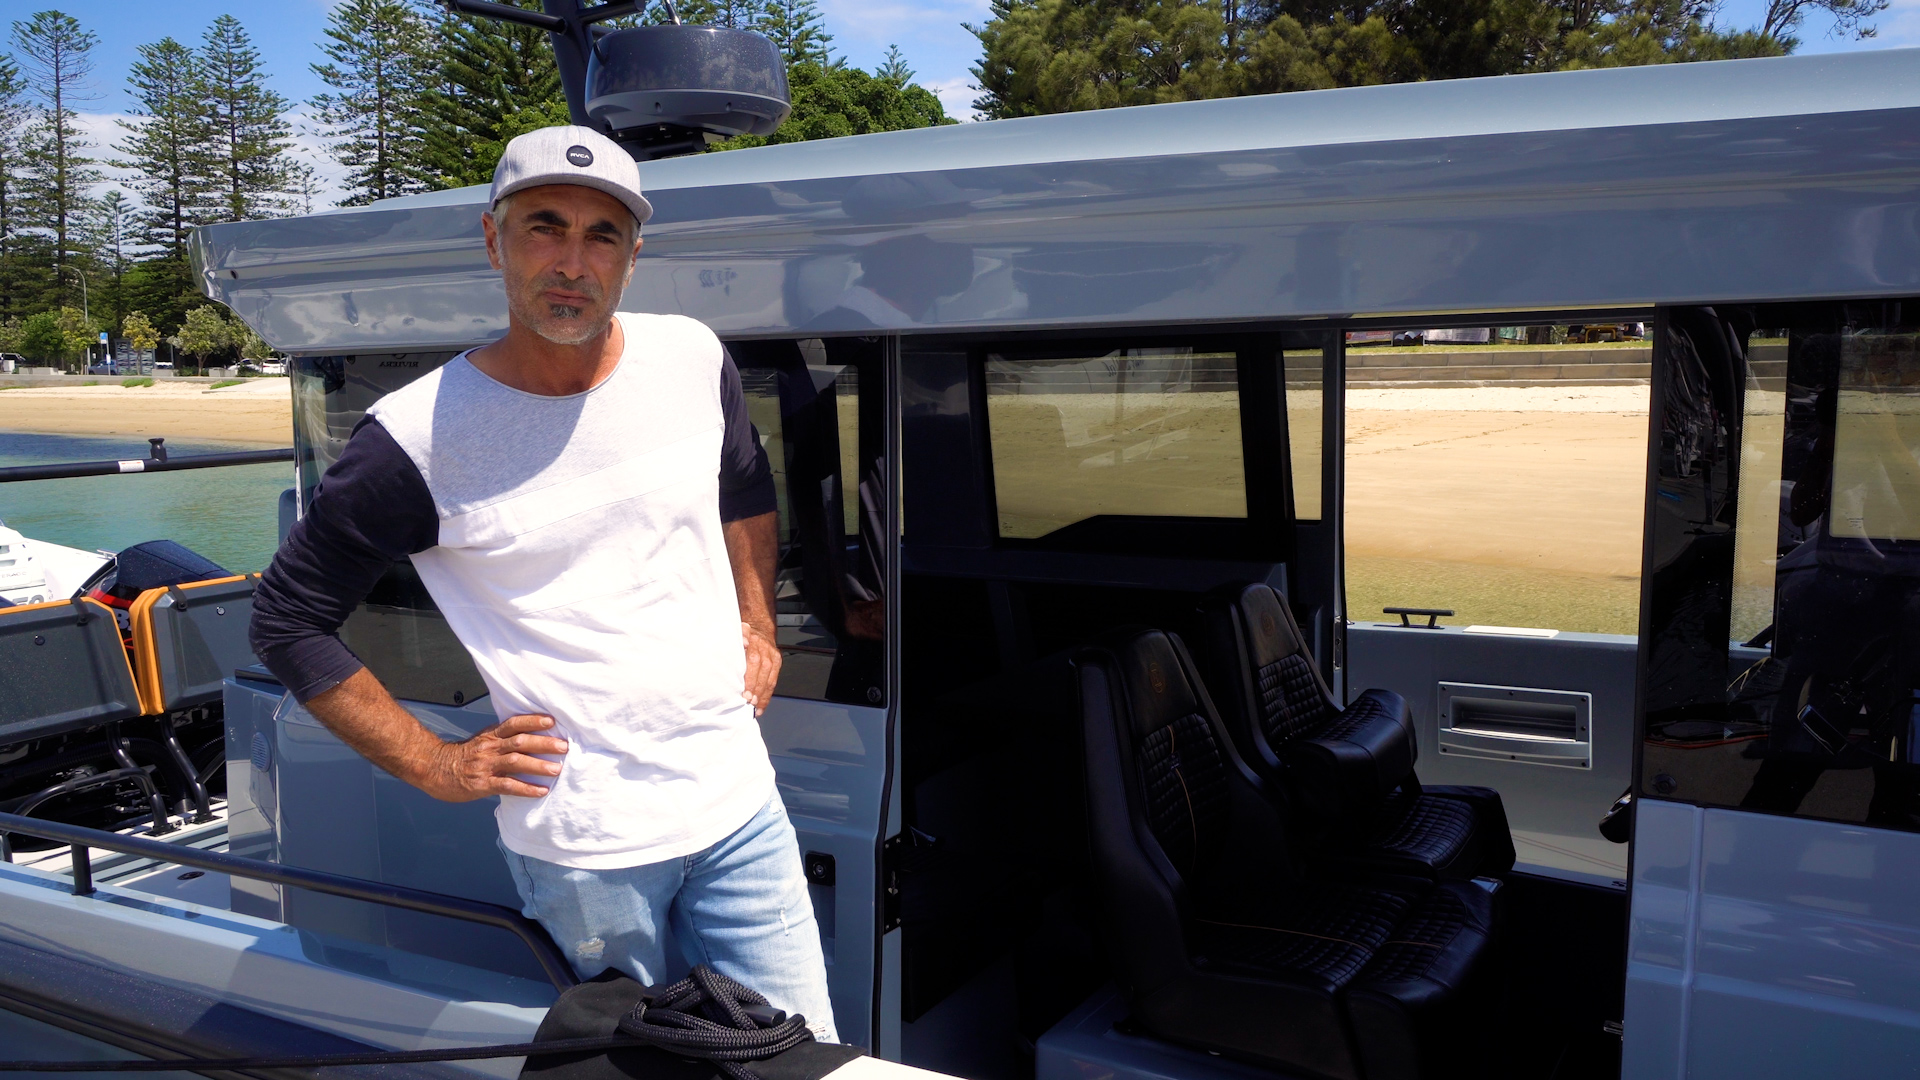 Dean Husband photographed onboard the BRABUS Shadow 900 XC